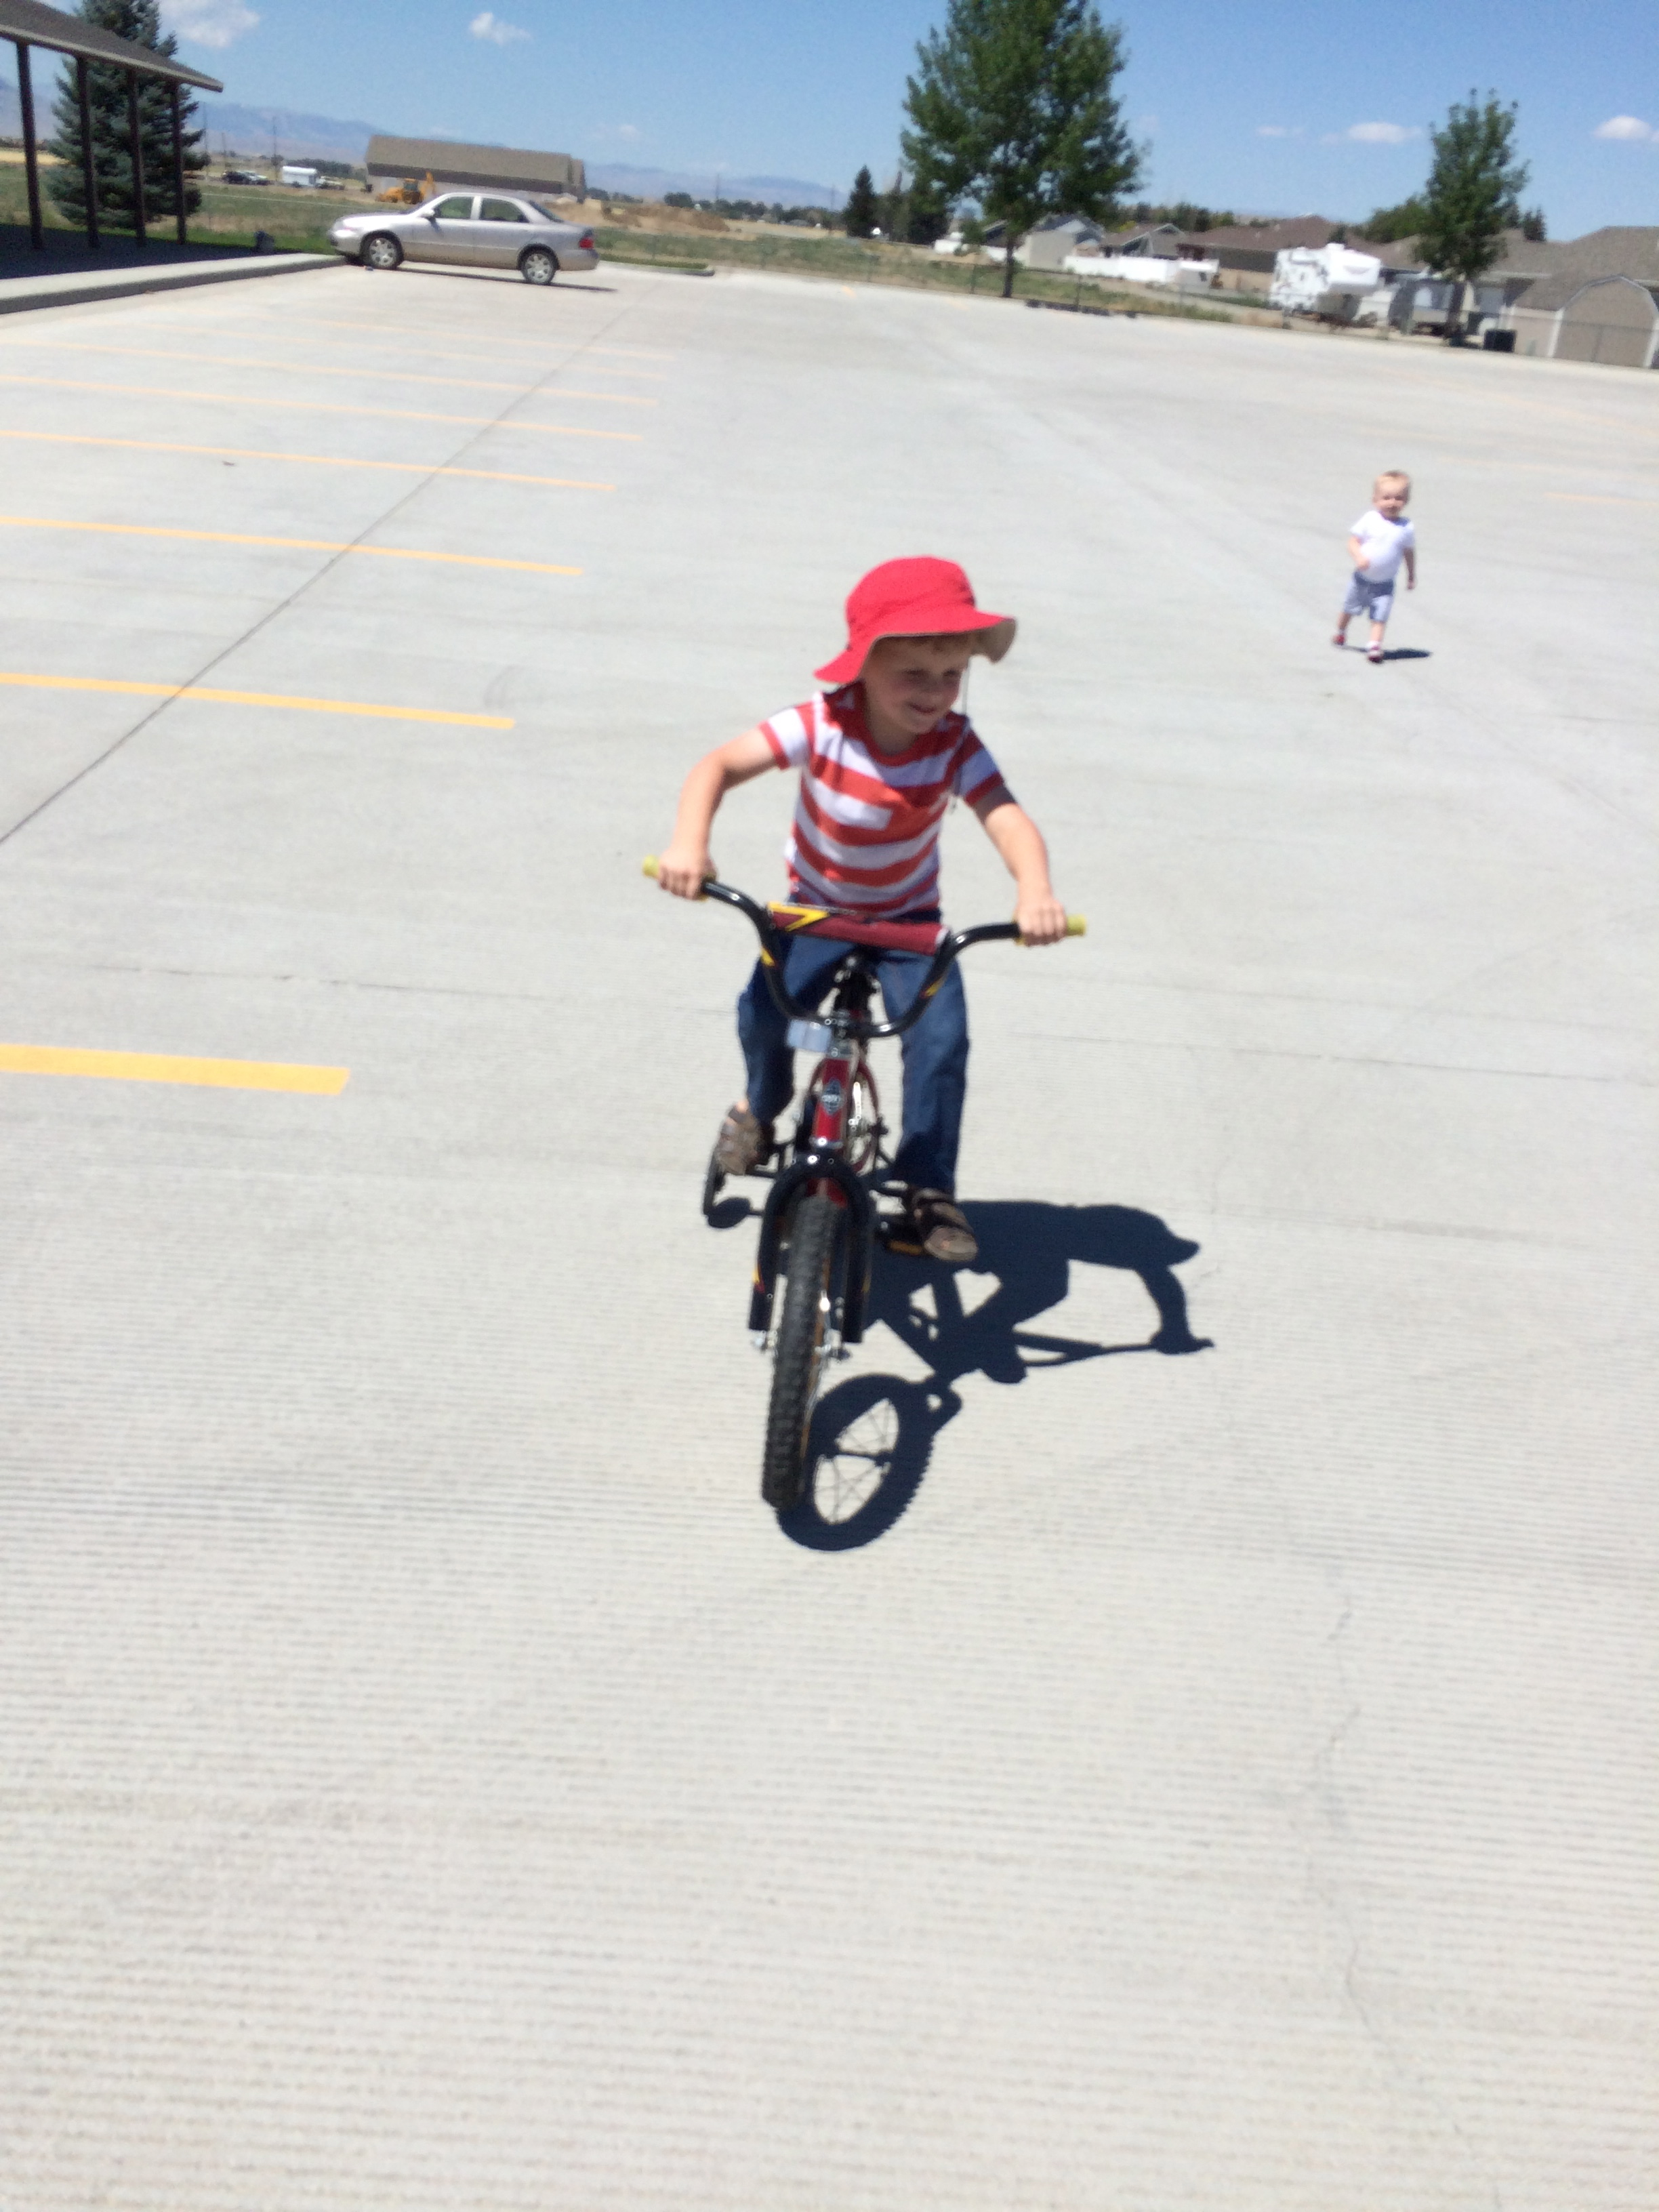 I took Asher to the church parking lot to test him out on the bike that Grandpa bought. He was a natural! (with training wheels) Finn played the jealous little brother role beautifully.